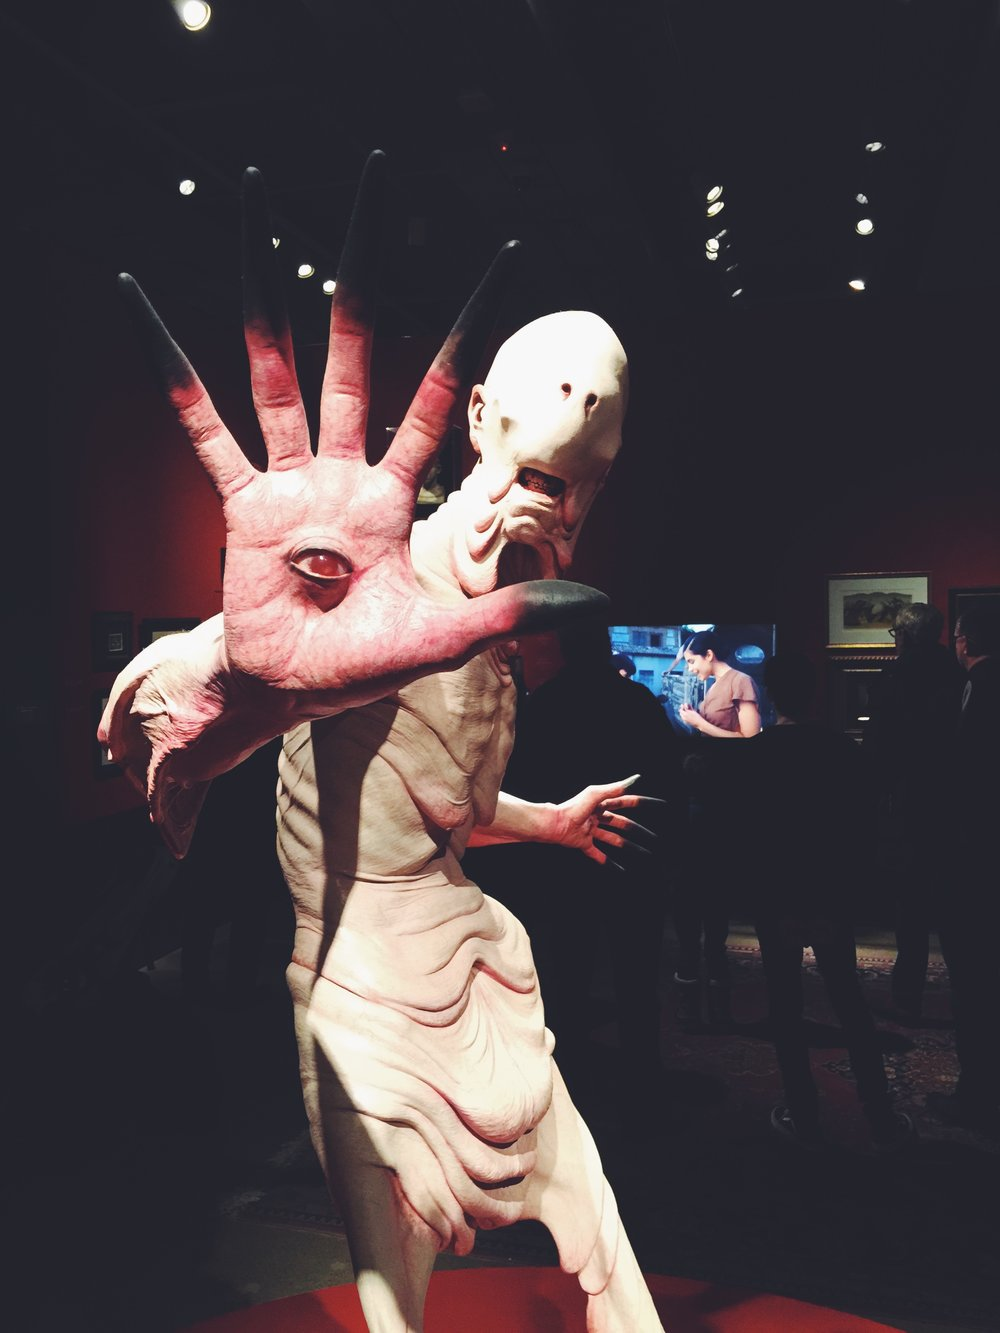 A Glimpse Inside Bleak House - A visit to the AGO's Guillermo del Toro At Home With Monster's exhibit